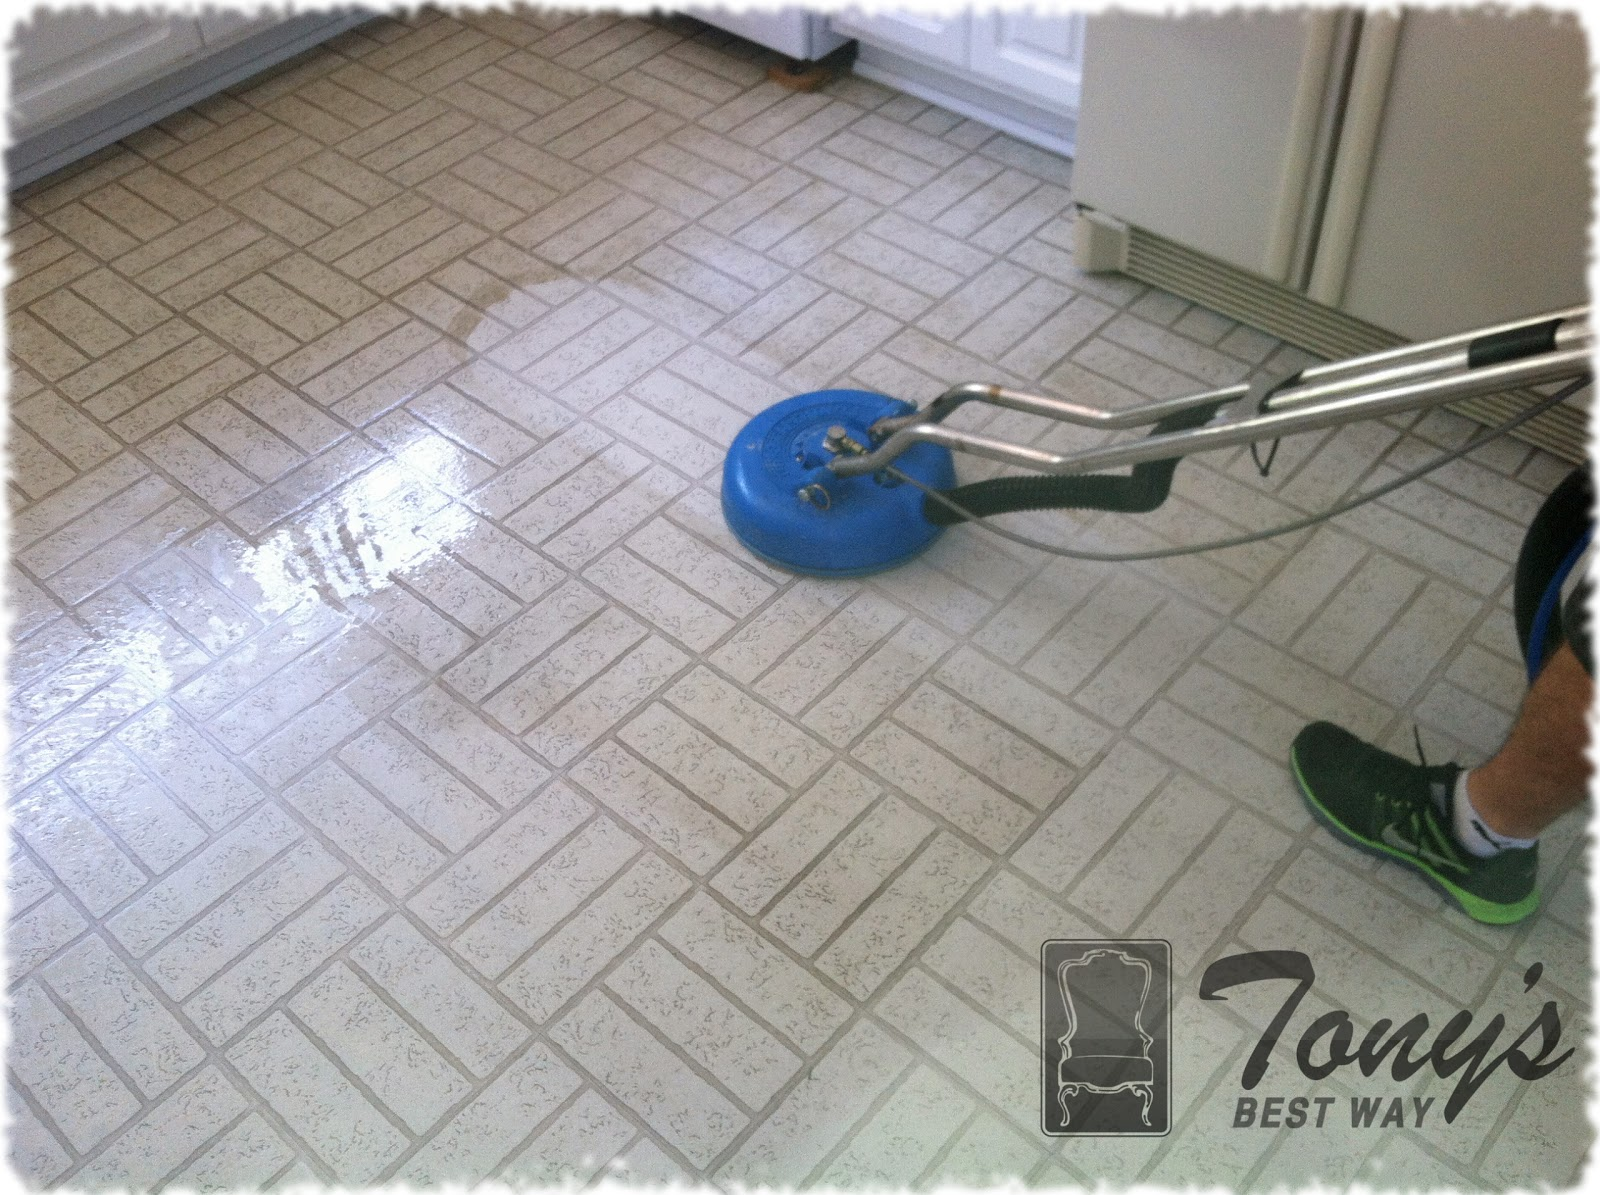 40 year old vinyl floor gets cleaning face lift 7 photos1 video our great hard floor cleaning equipment cleans up as it works no spray dailygadgetfo Image collections